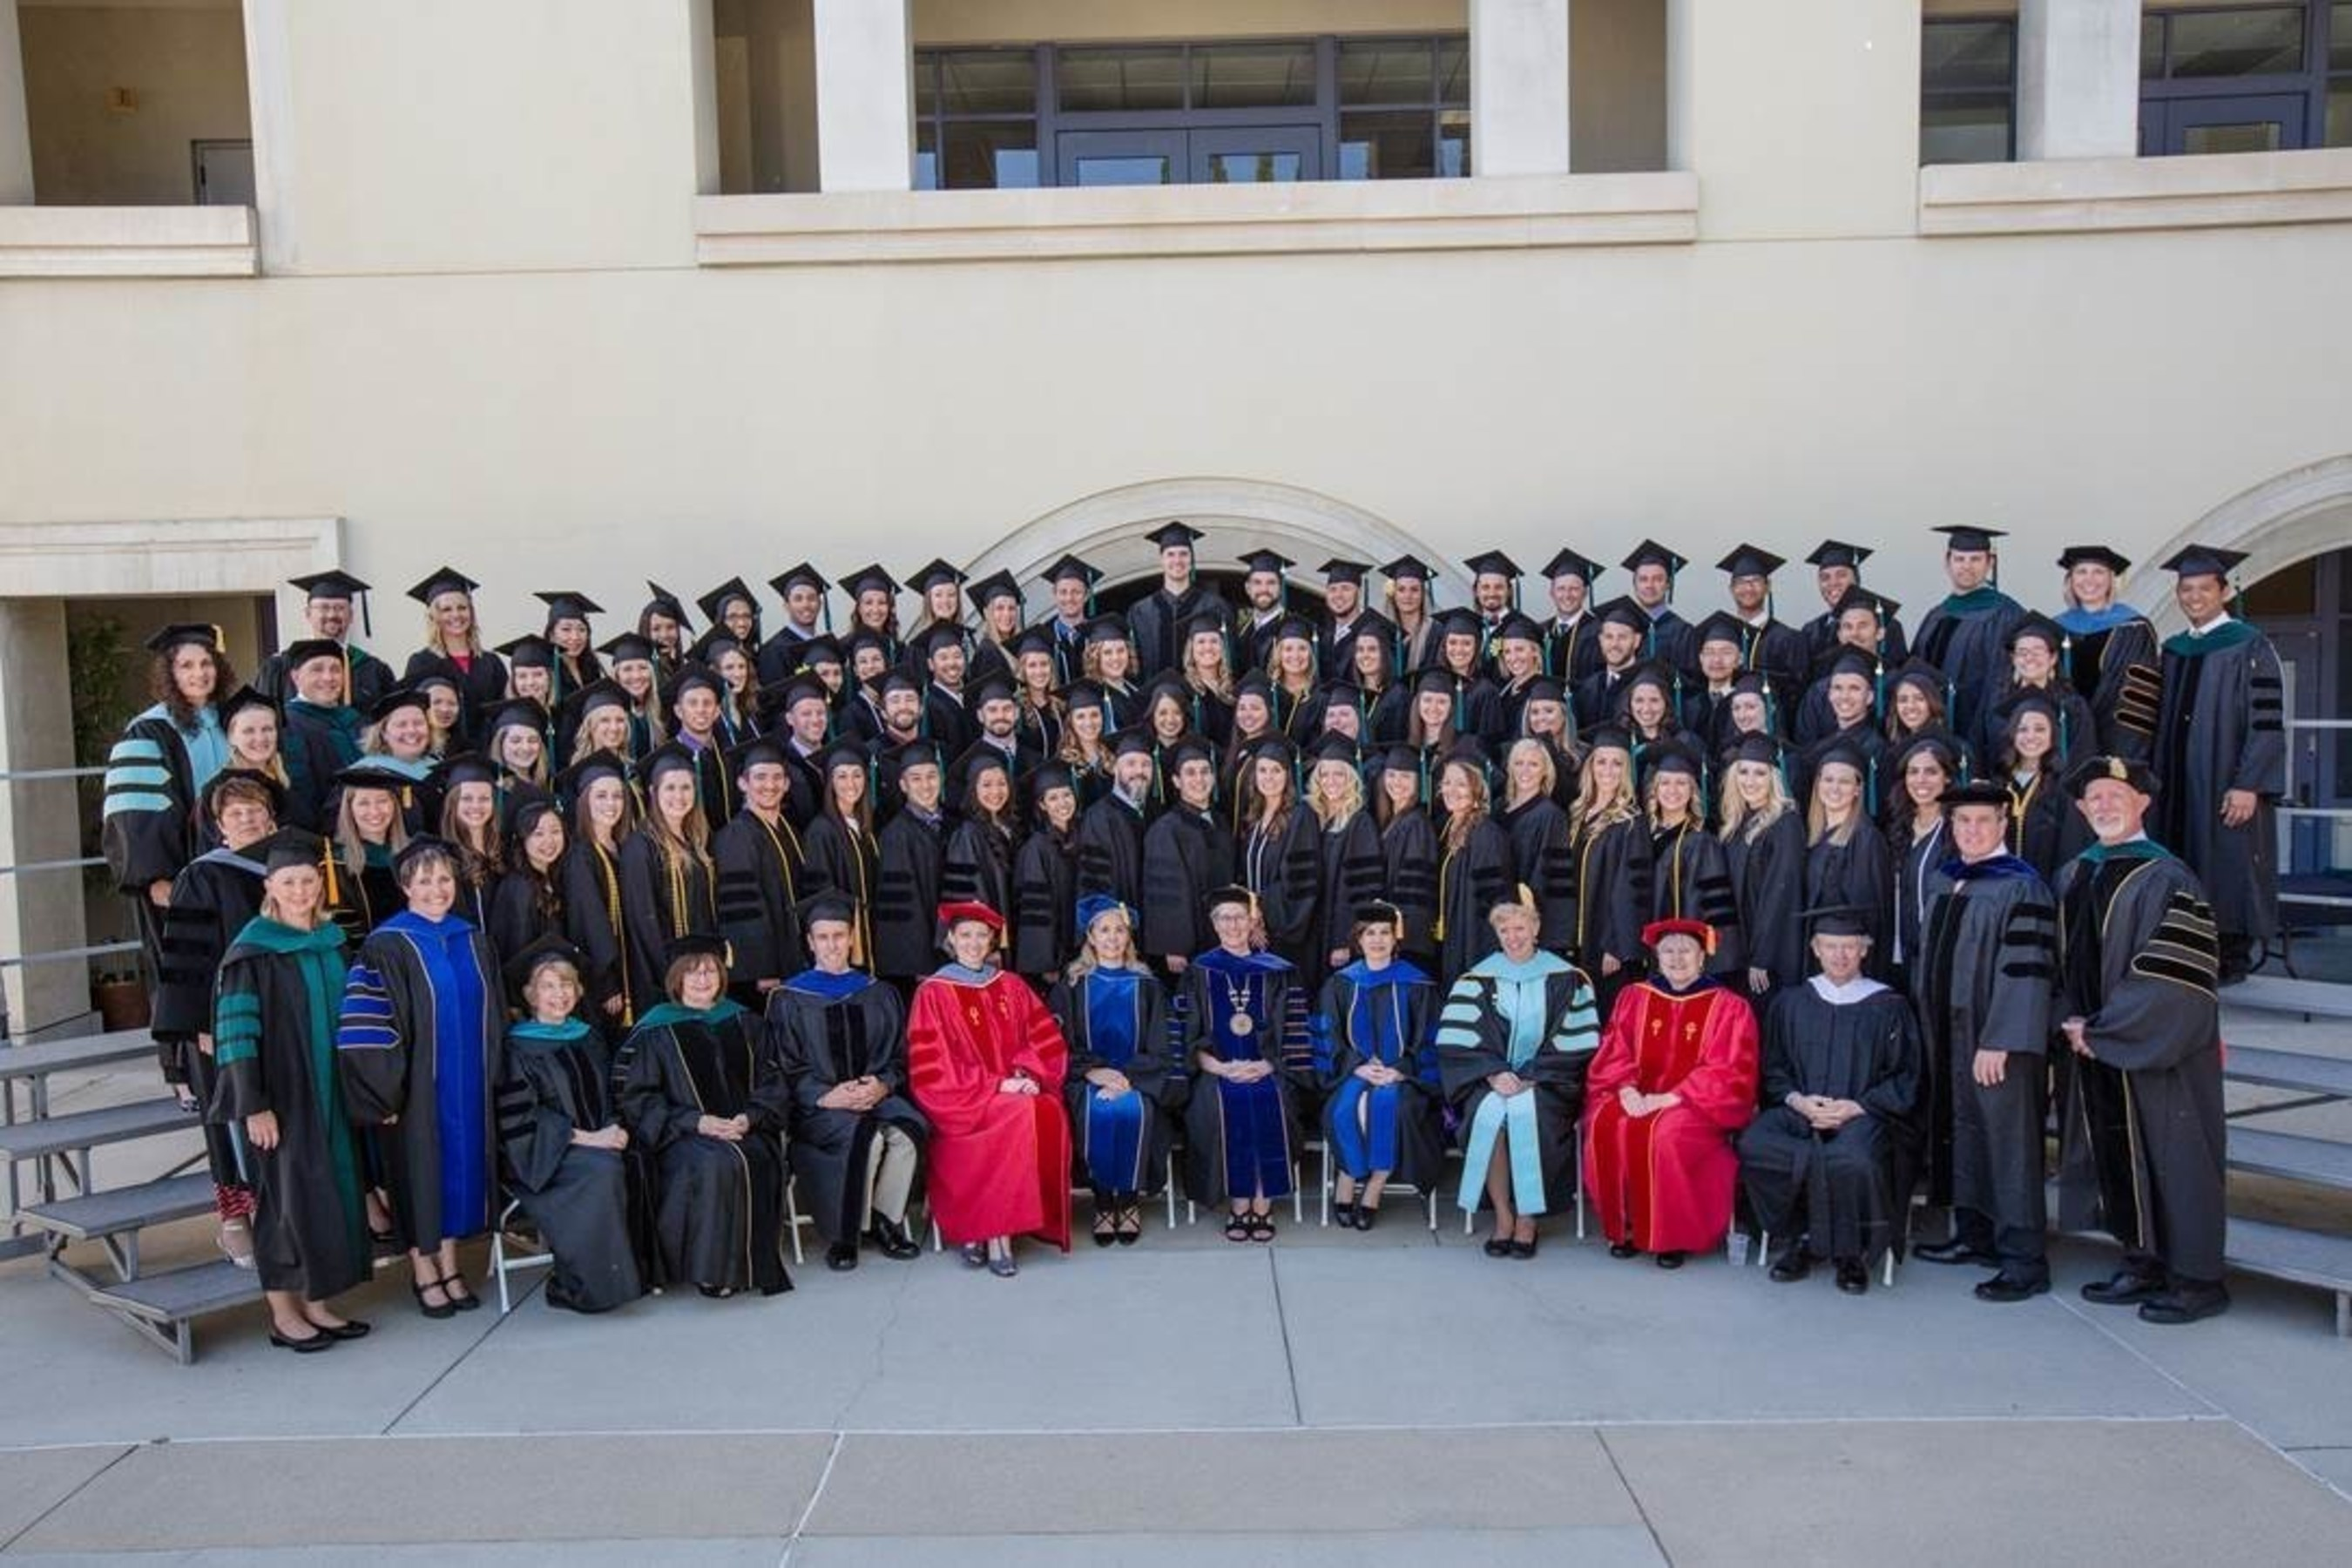 The University of St. Augustine for Health Sciences Southern California campus in San Marcos celebrated its spring commencement by presenting 75 graduates with Doctor of Physical Therapy, Doctor of Occupational Therapy, Master of Occupational Therapy and Doctor of Education degrees.